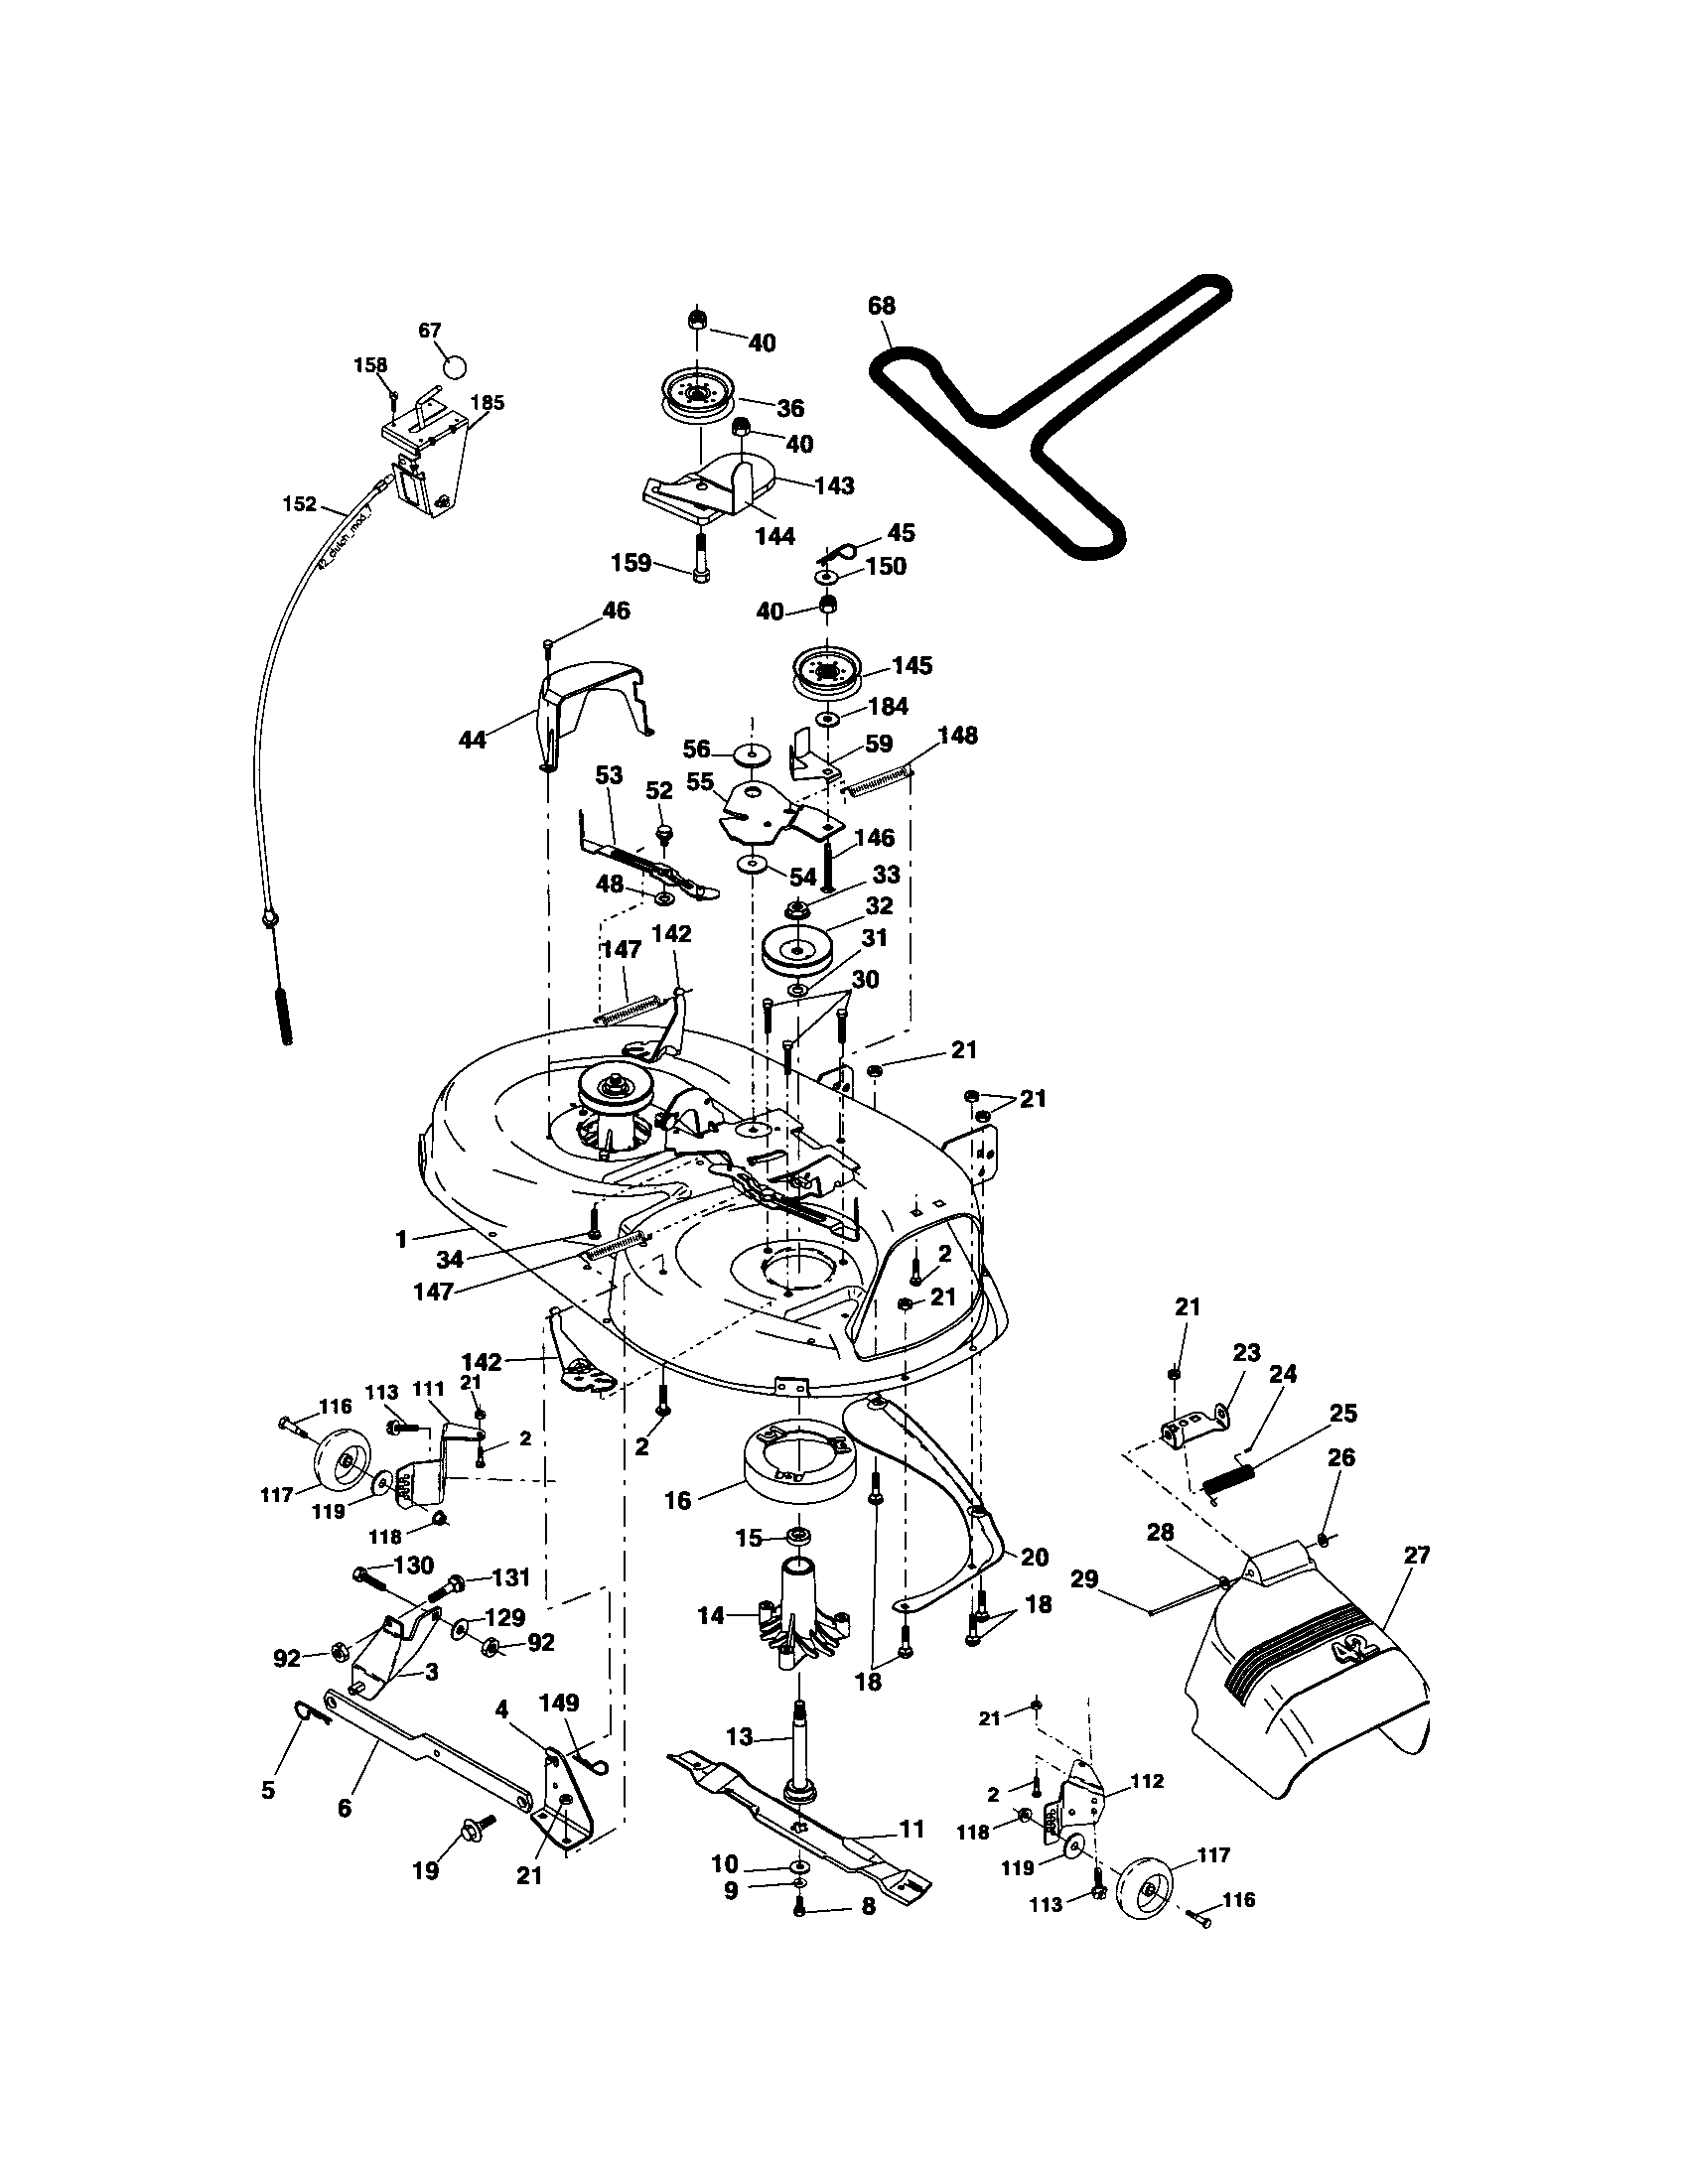 Mower Deck Diagram Amp Parts List For Model